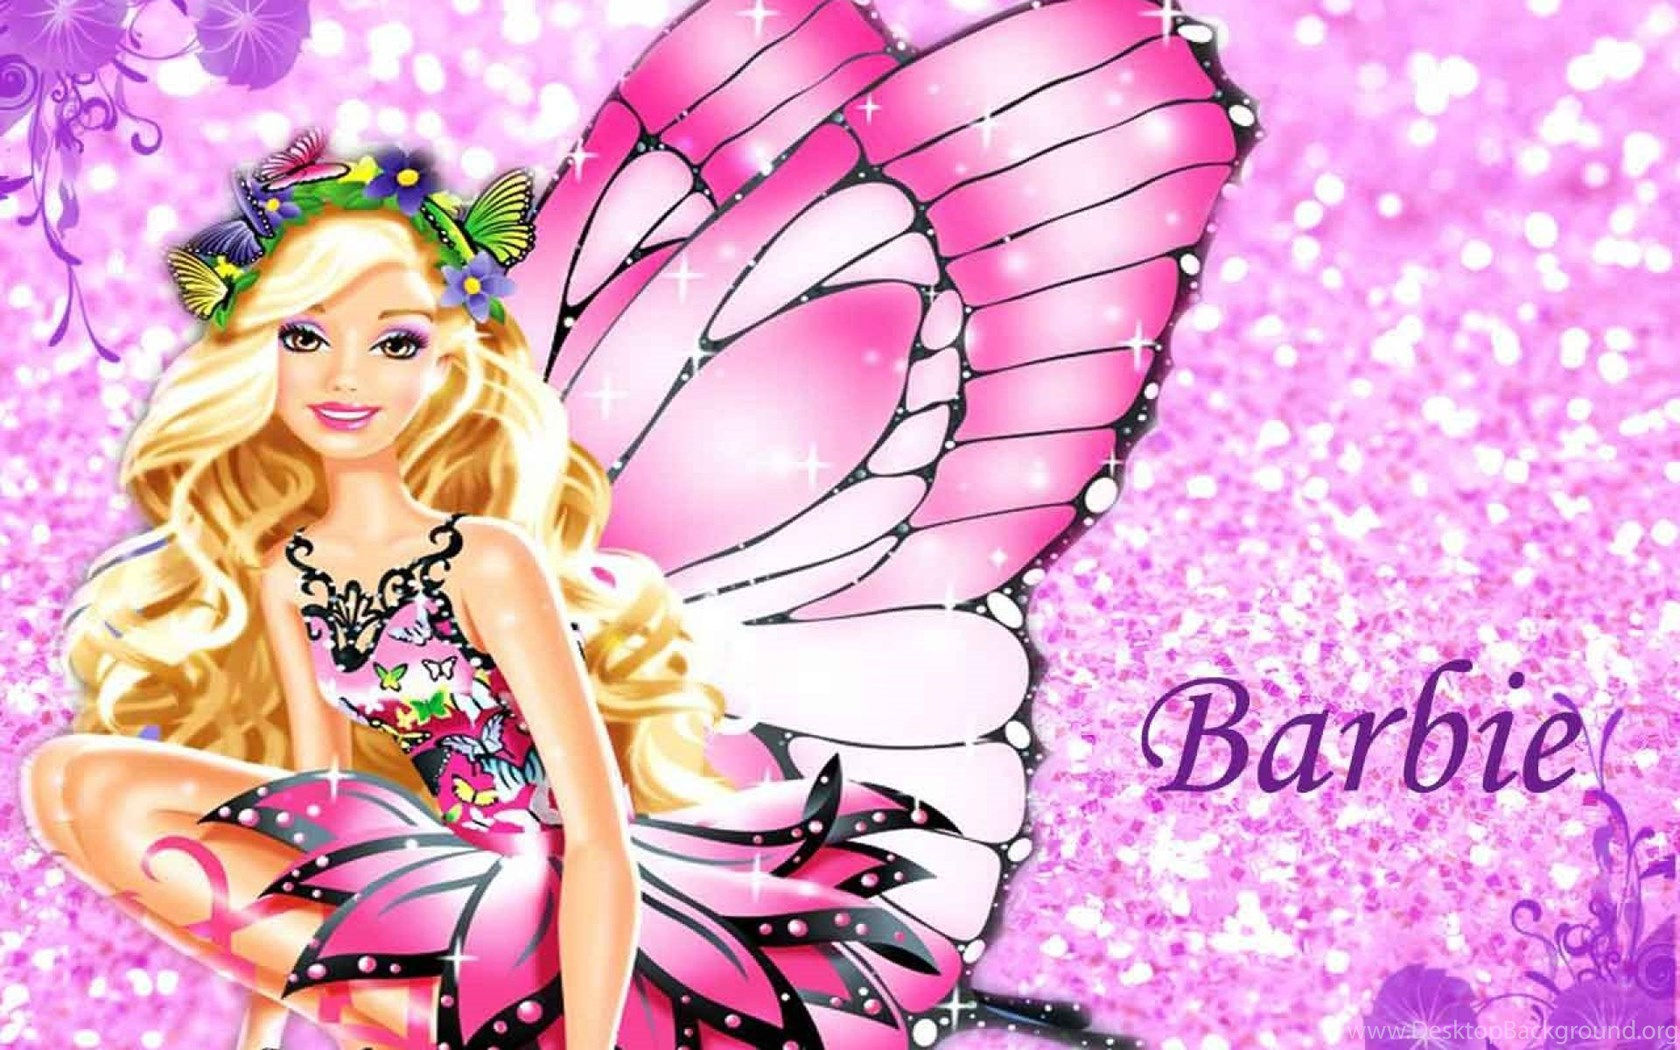 Barbie Pink Backgrounds Wallpapers Cave Desktop Background: Barbie Pink Backgrounds Wallpapers Cave Desktop Background